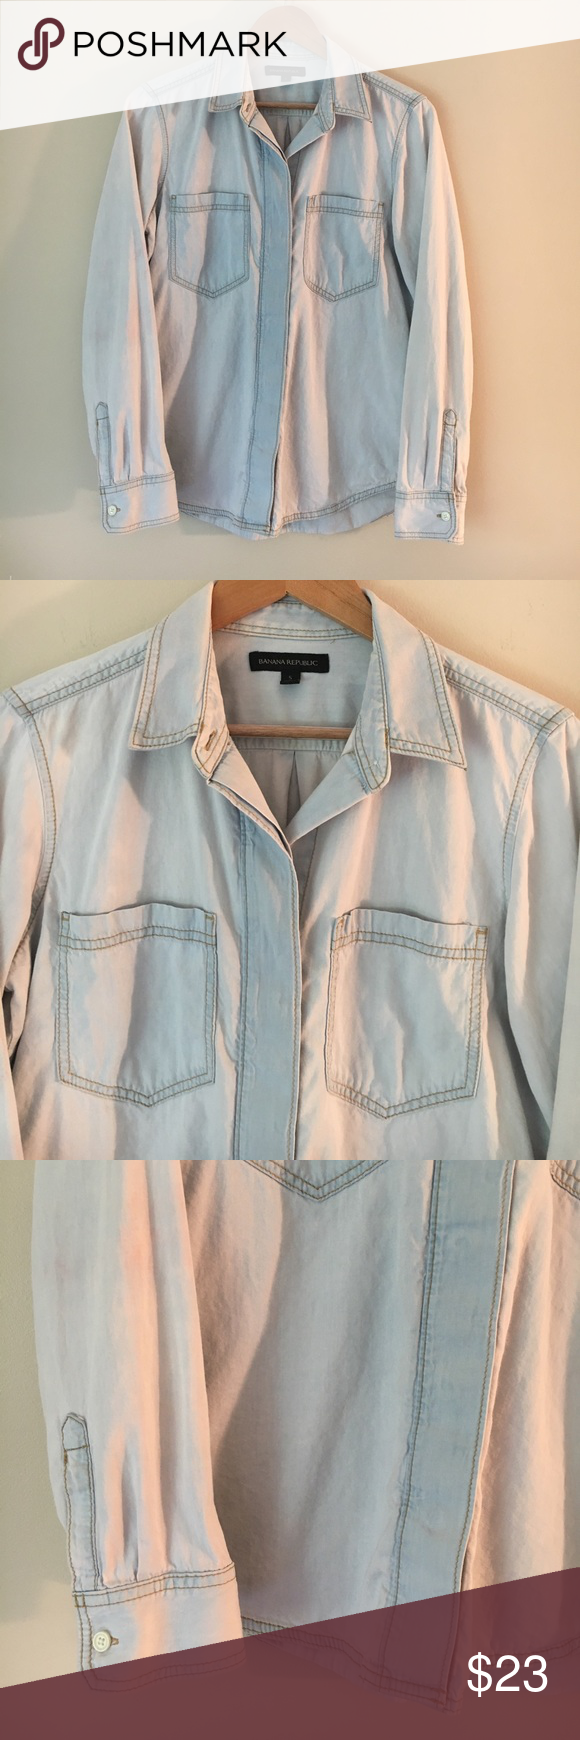 """Banana Republic Chambray Button Down GUC. 100% cotton. 38"""" chest, 26"""" length. Size S but fits more like a M. Last two pics show a couple of small pink marks on right sleeve, they are barely noticeable. Banana Republic Tops Button Down Shirts"""